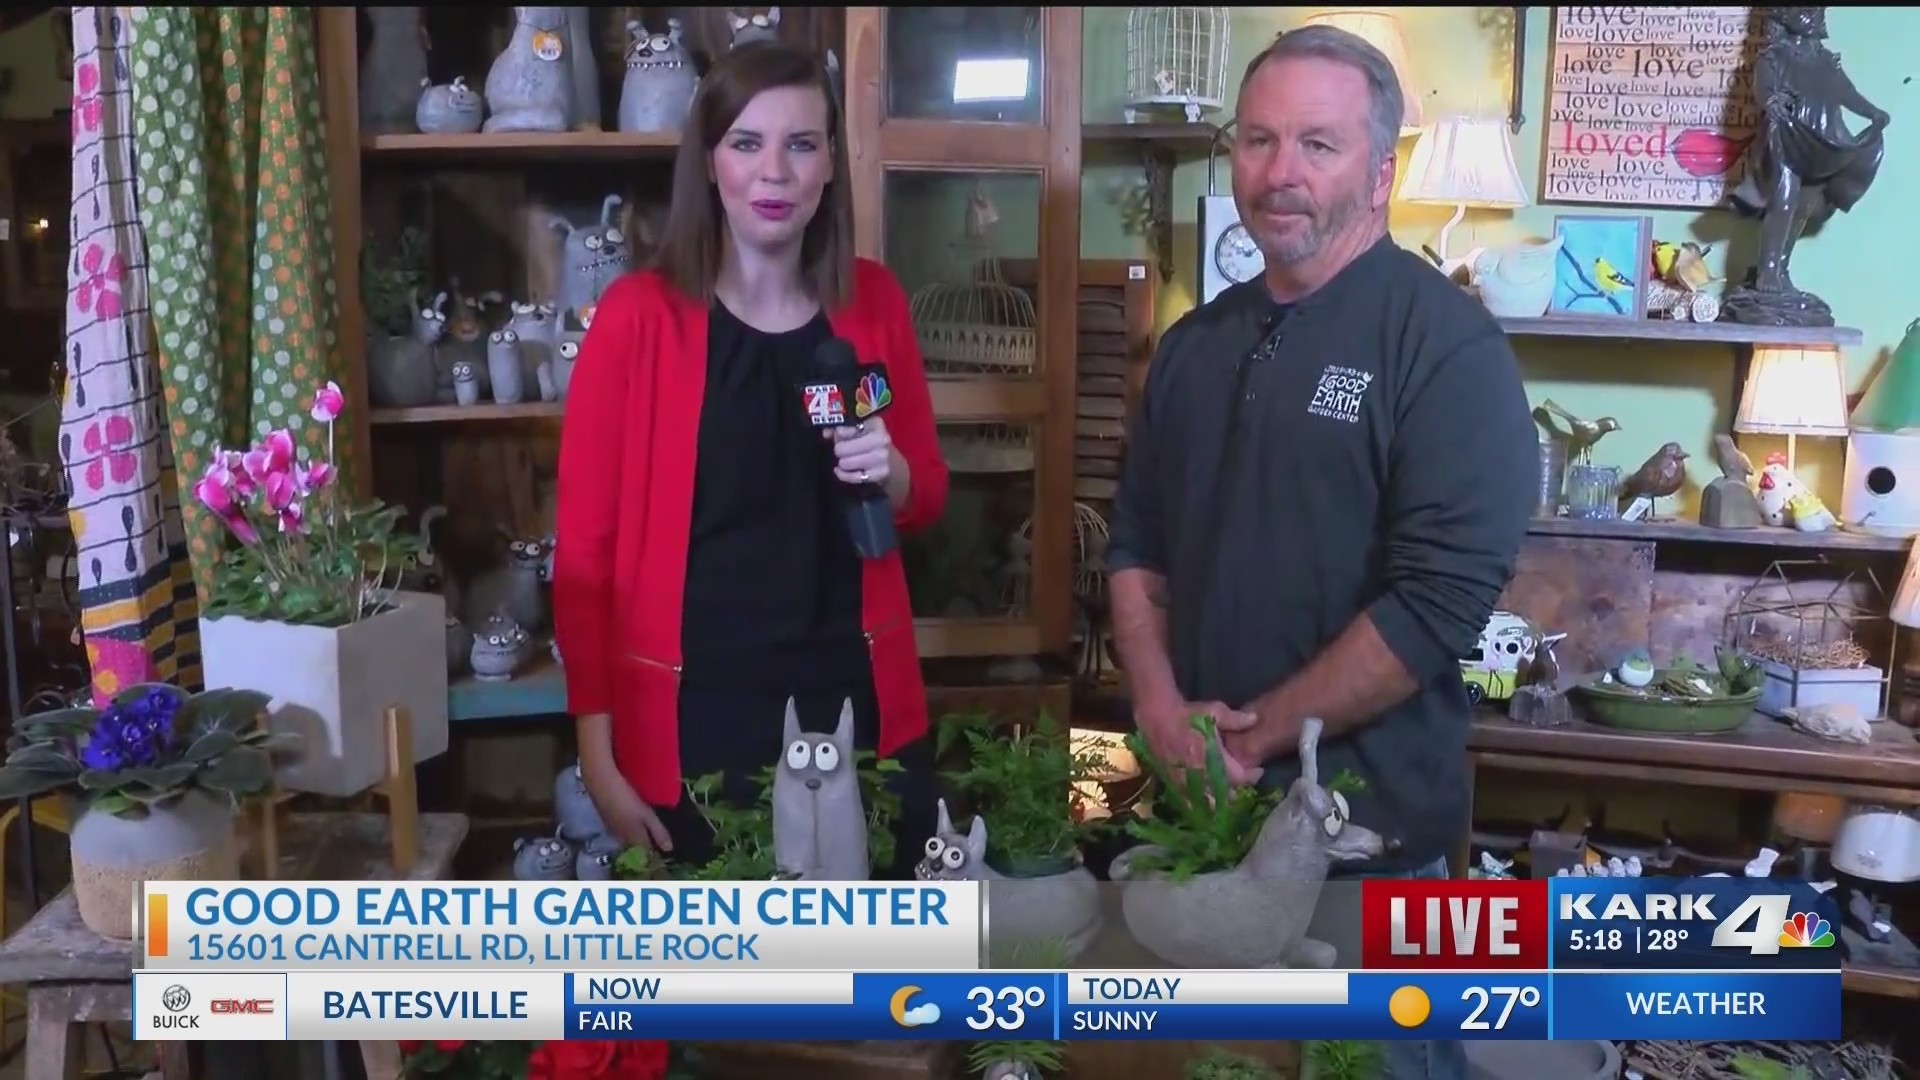 Good Earth Garden Center- Fun With Potted Plants